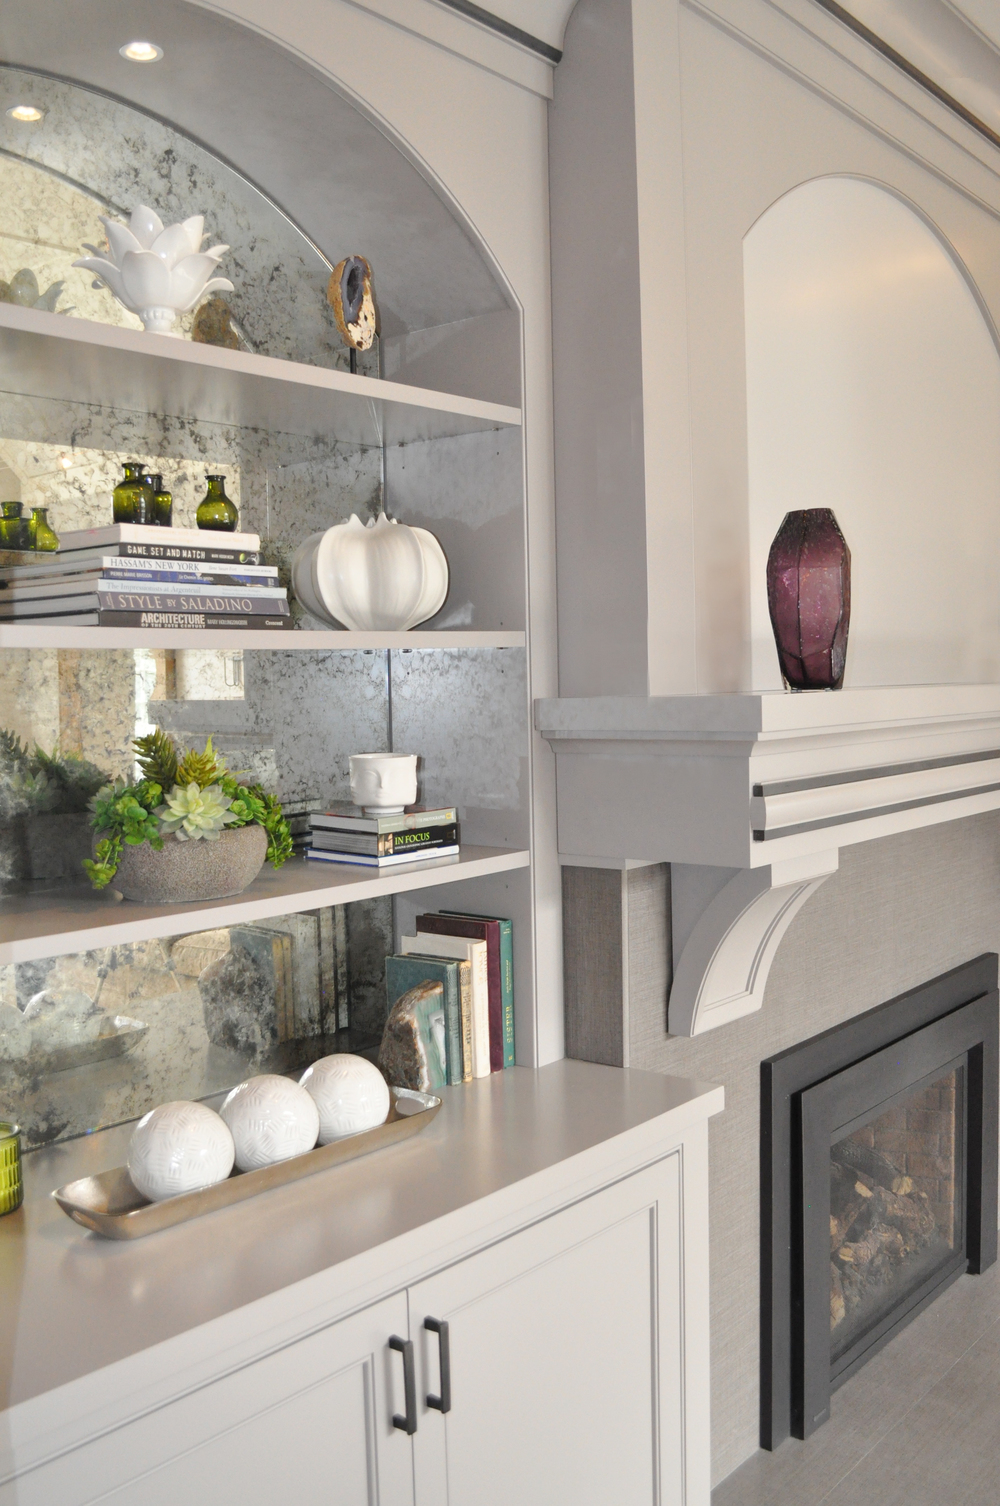 KAM DESIGN_Interior Designer Kim A Mitchell_Larchmont NY Family Room_Custom Gray Shelving with Antique Mirror Back_Custom Overmantel_2016.jpg